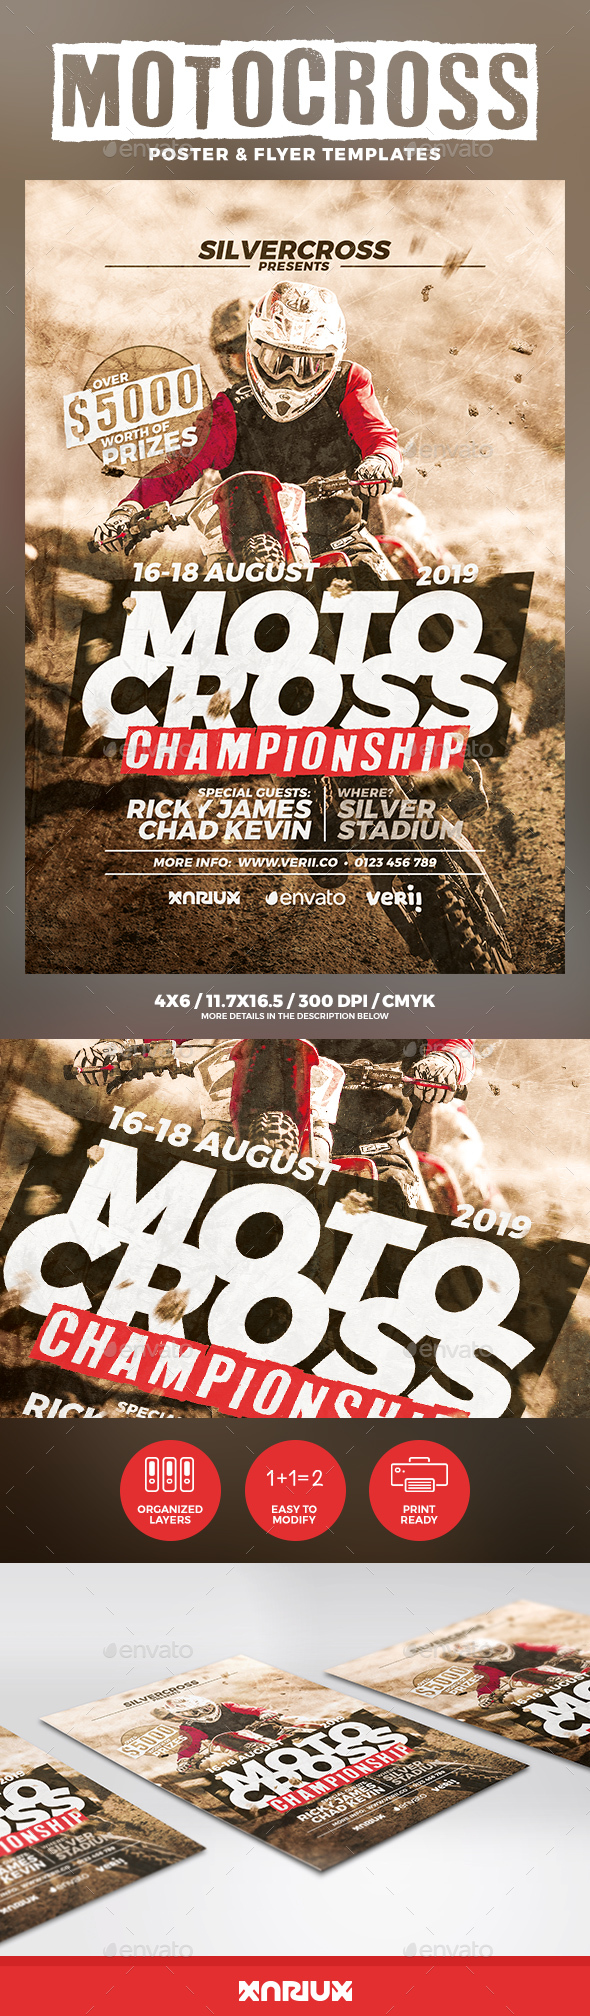 Motocross Flyer and Poster - Sports Events